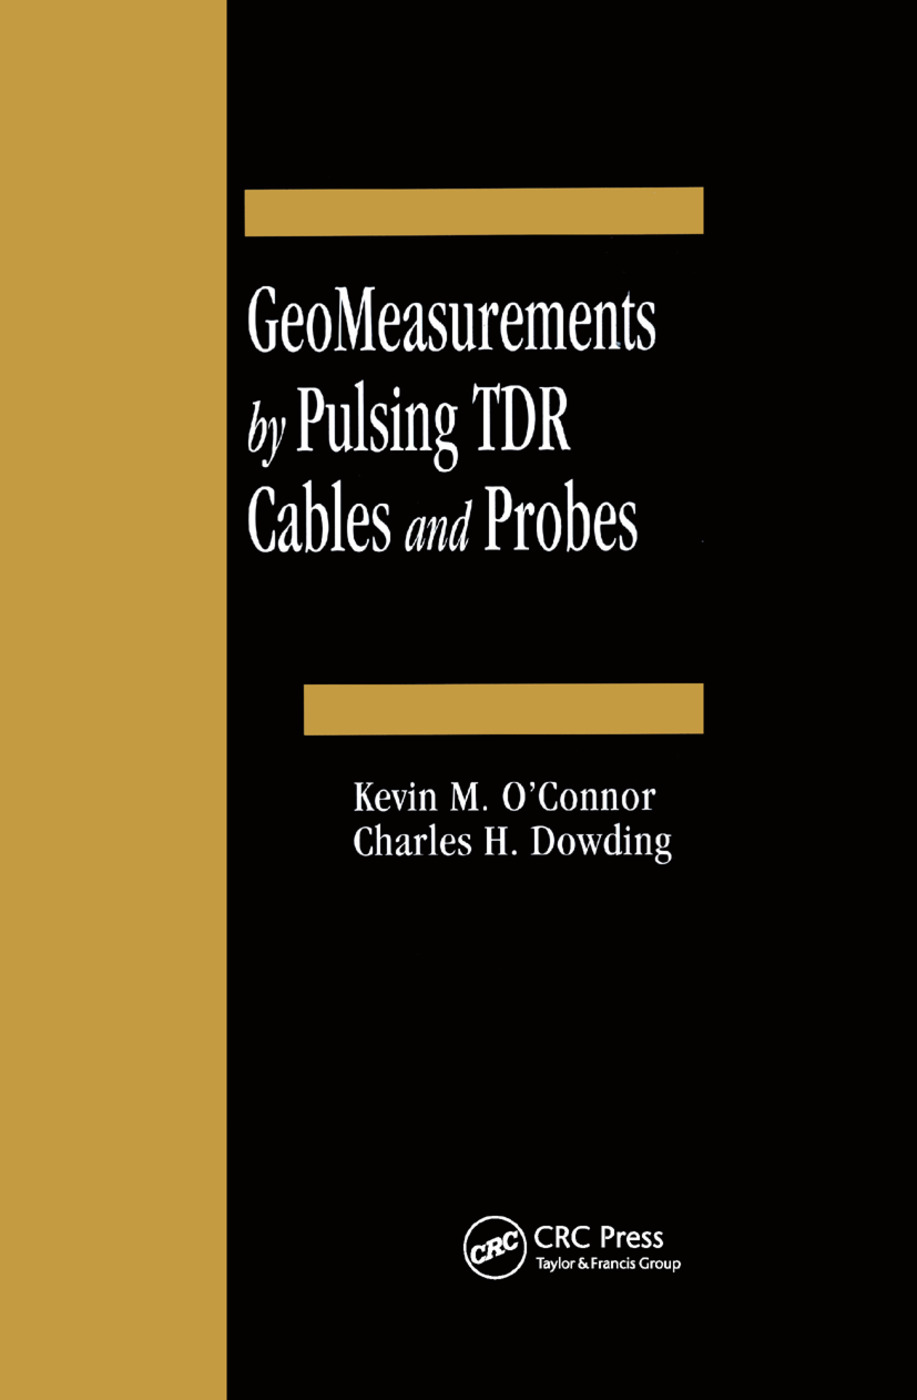 GeoMeasurements by Pulsing TDR Cables and Probes: 1st Edition (Paperback) book cover